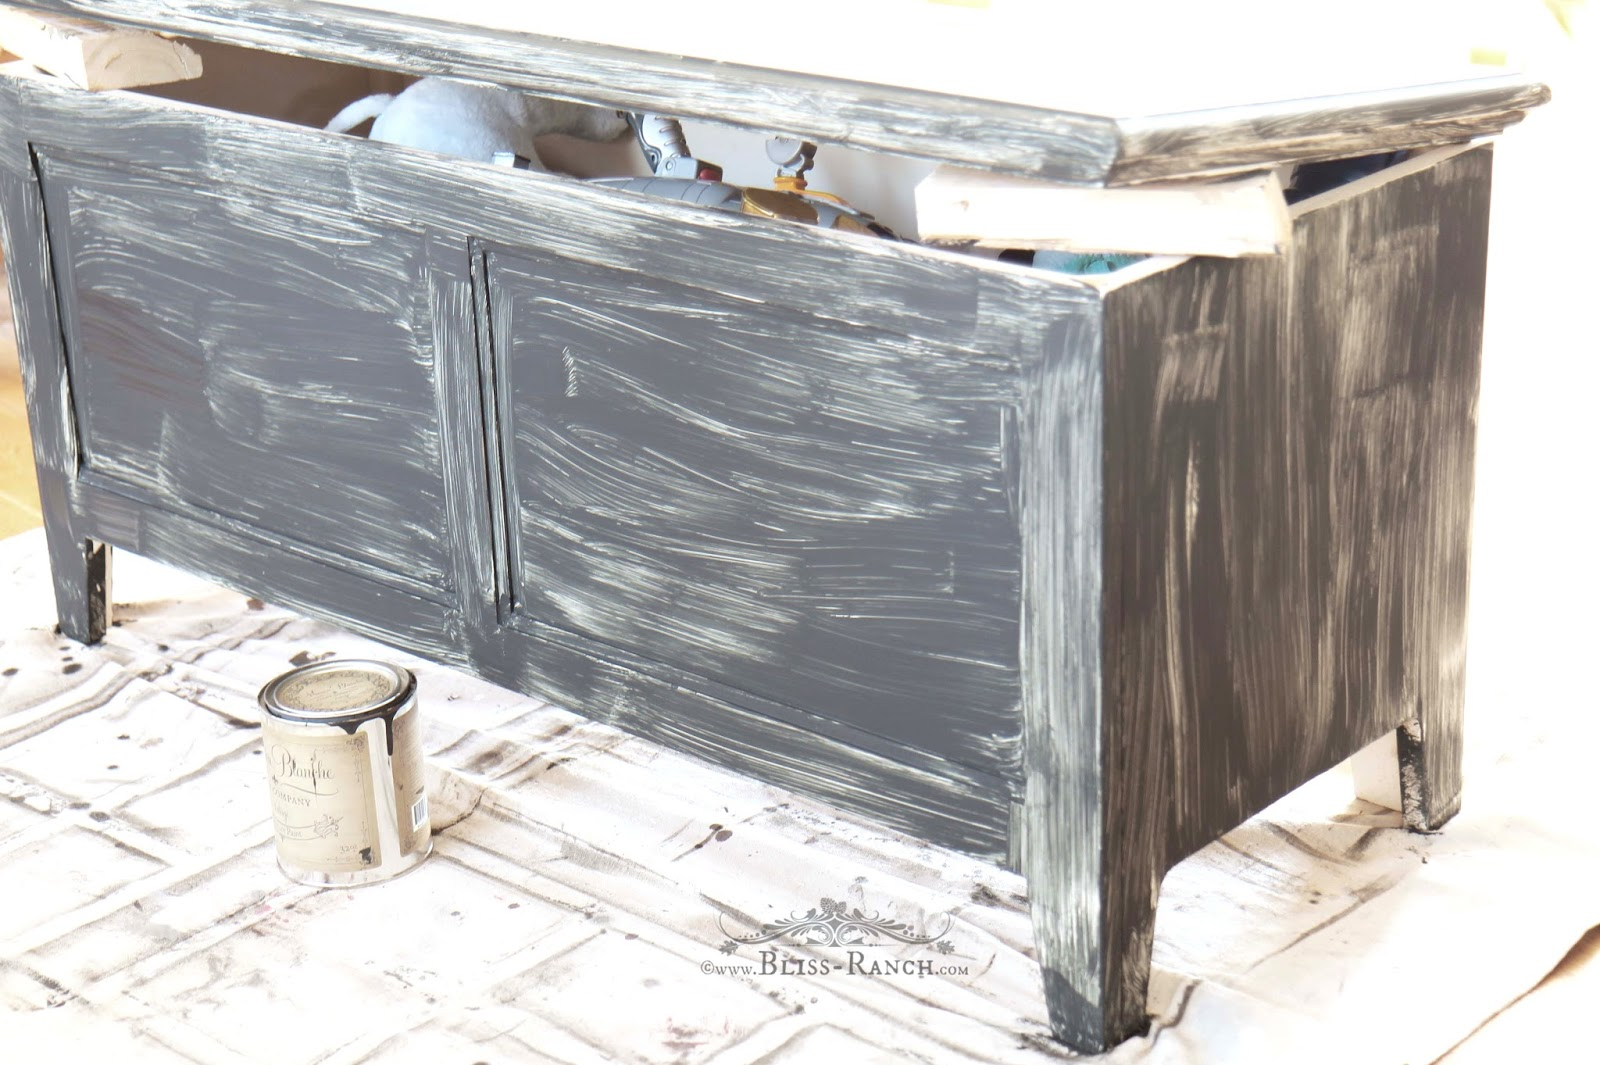 Toy Box to Spool Cabinet with Maison Blanche Paint, Bliss-Ranch.com